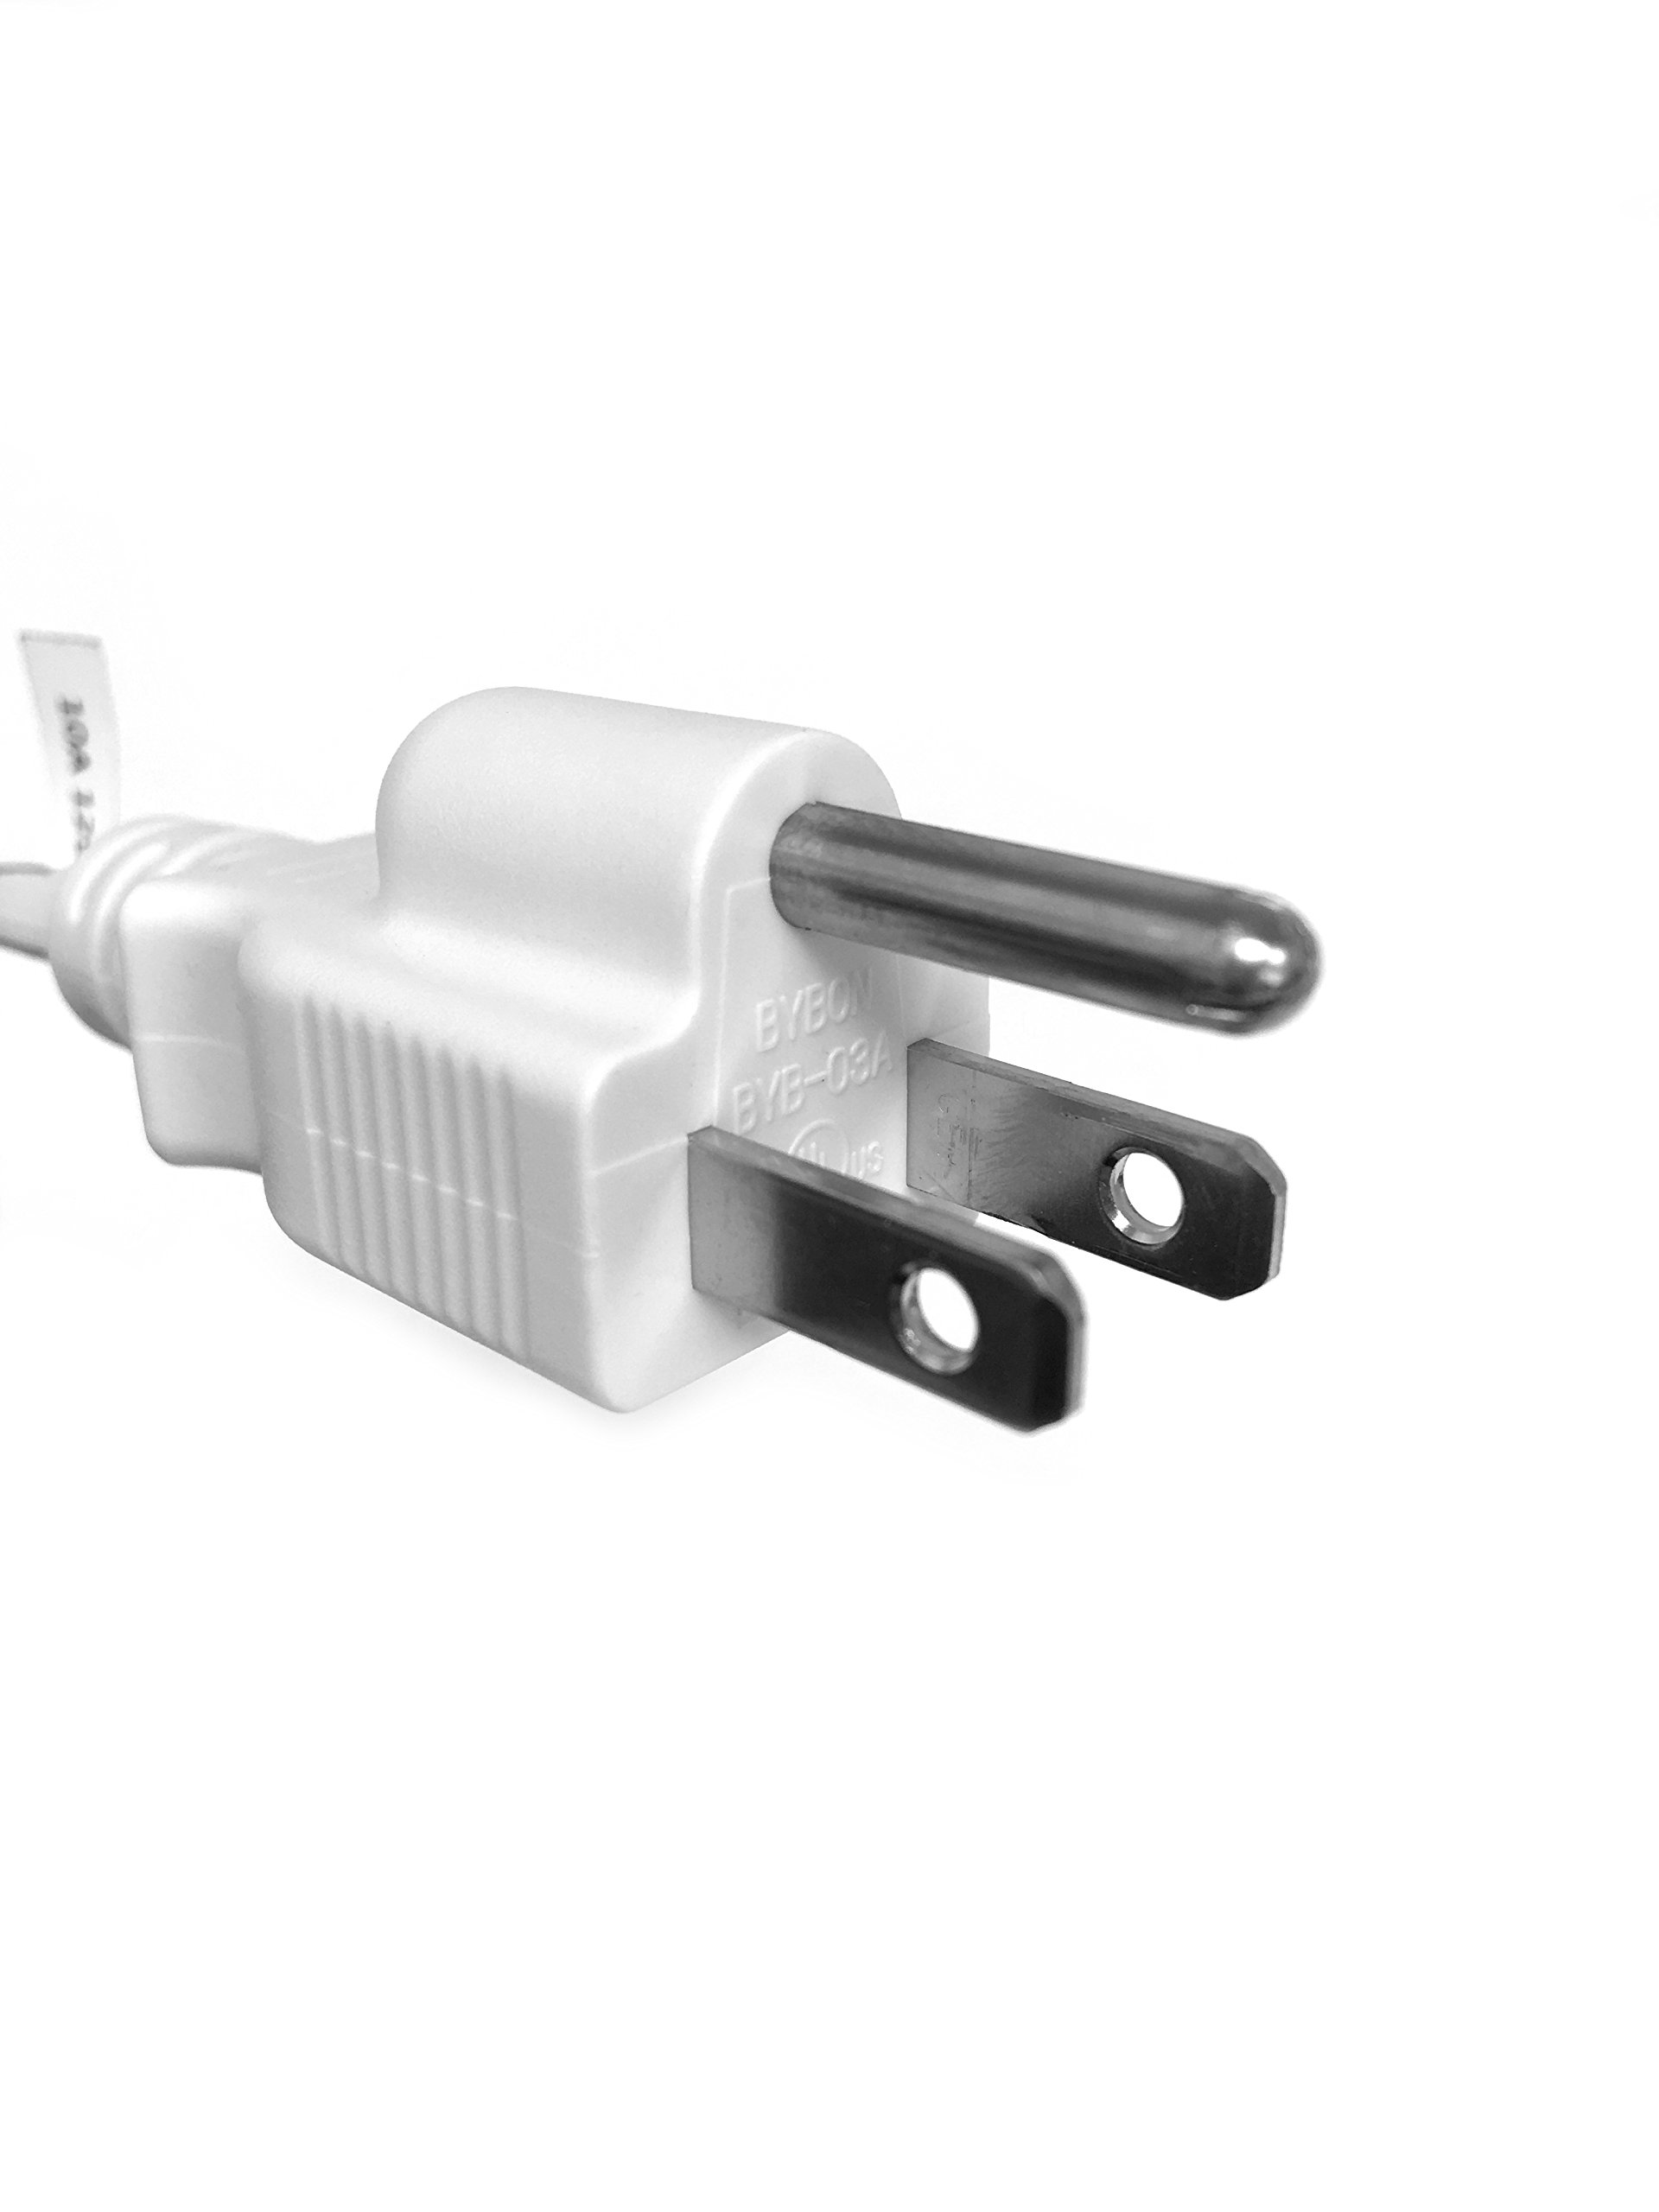 BYBON 25FT 18 AWG SJT Universal Power Cord NEMA 5-15P to C13,Computer/Printer Cord,White,UL listed. by BYBON